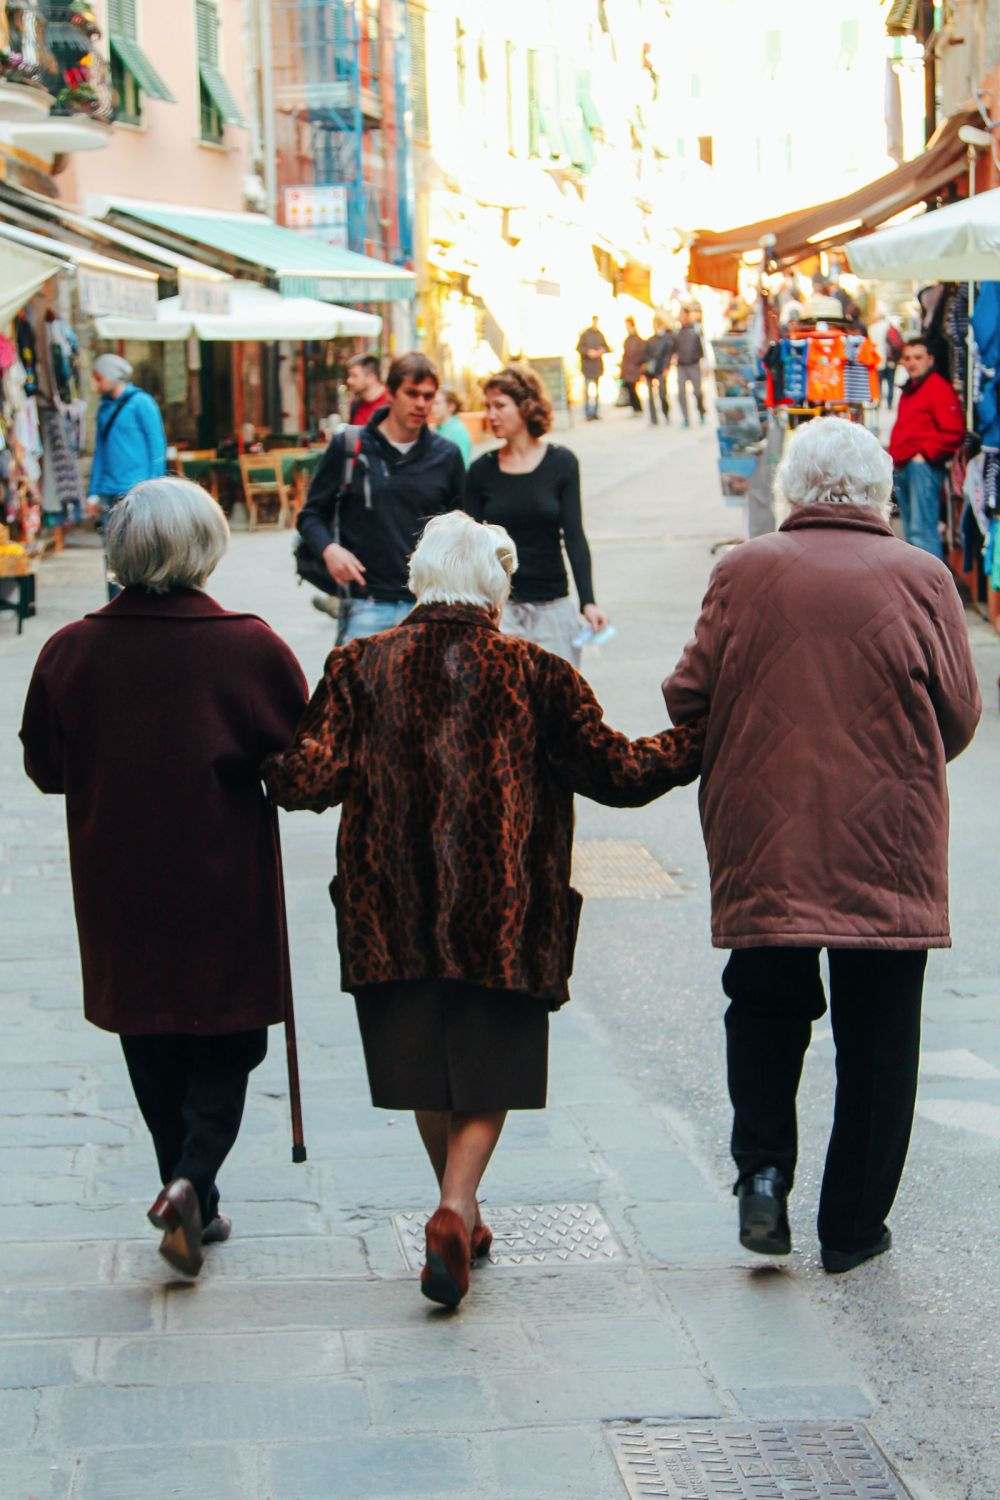 Vernazza in Cinque Terre, Italy - The Photo Diary! [4 of 5] (15)